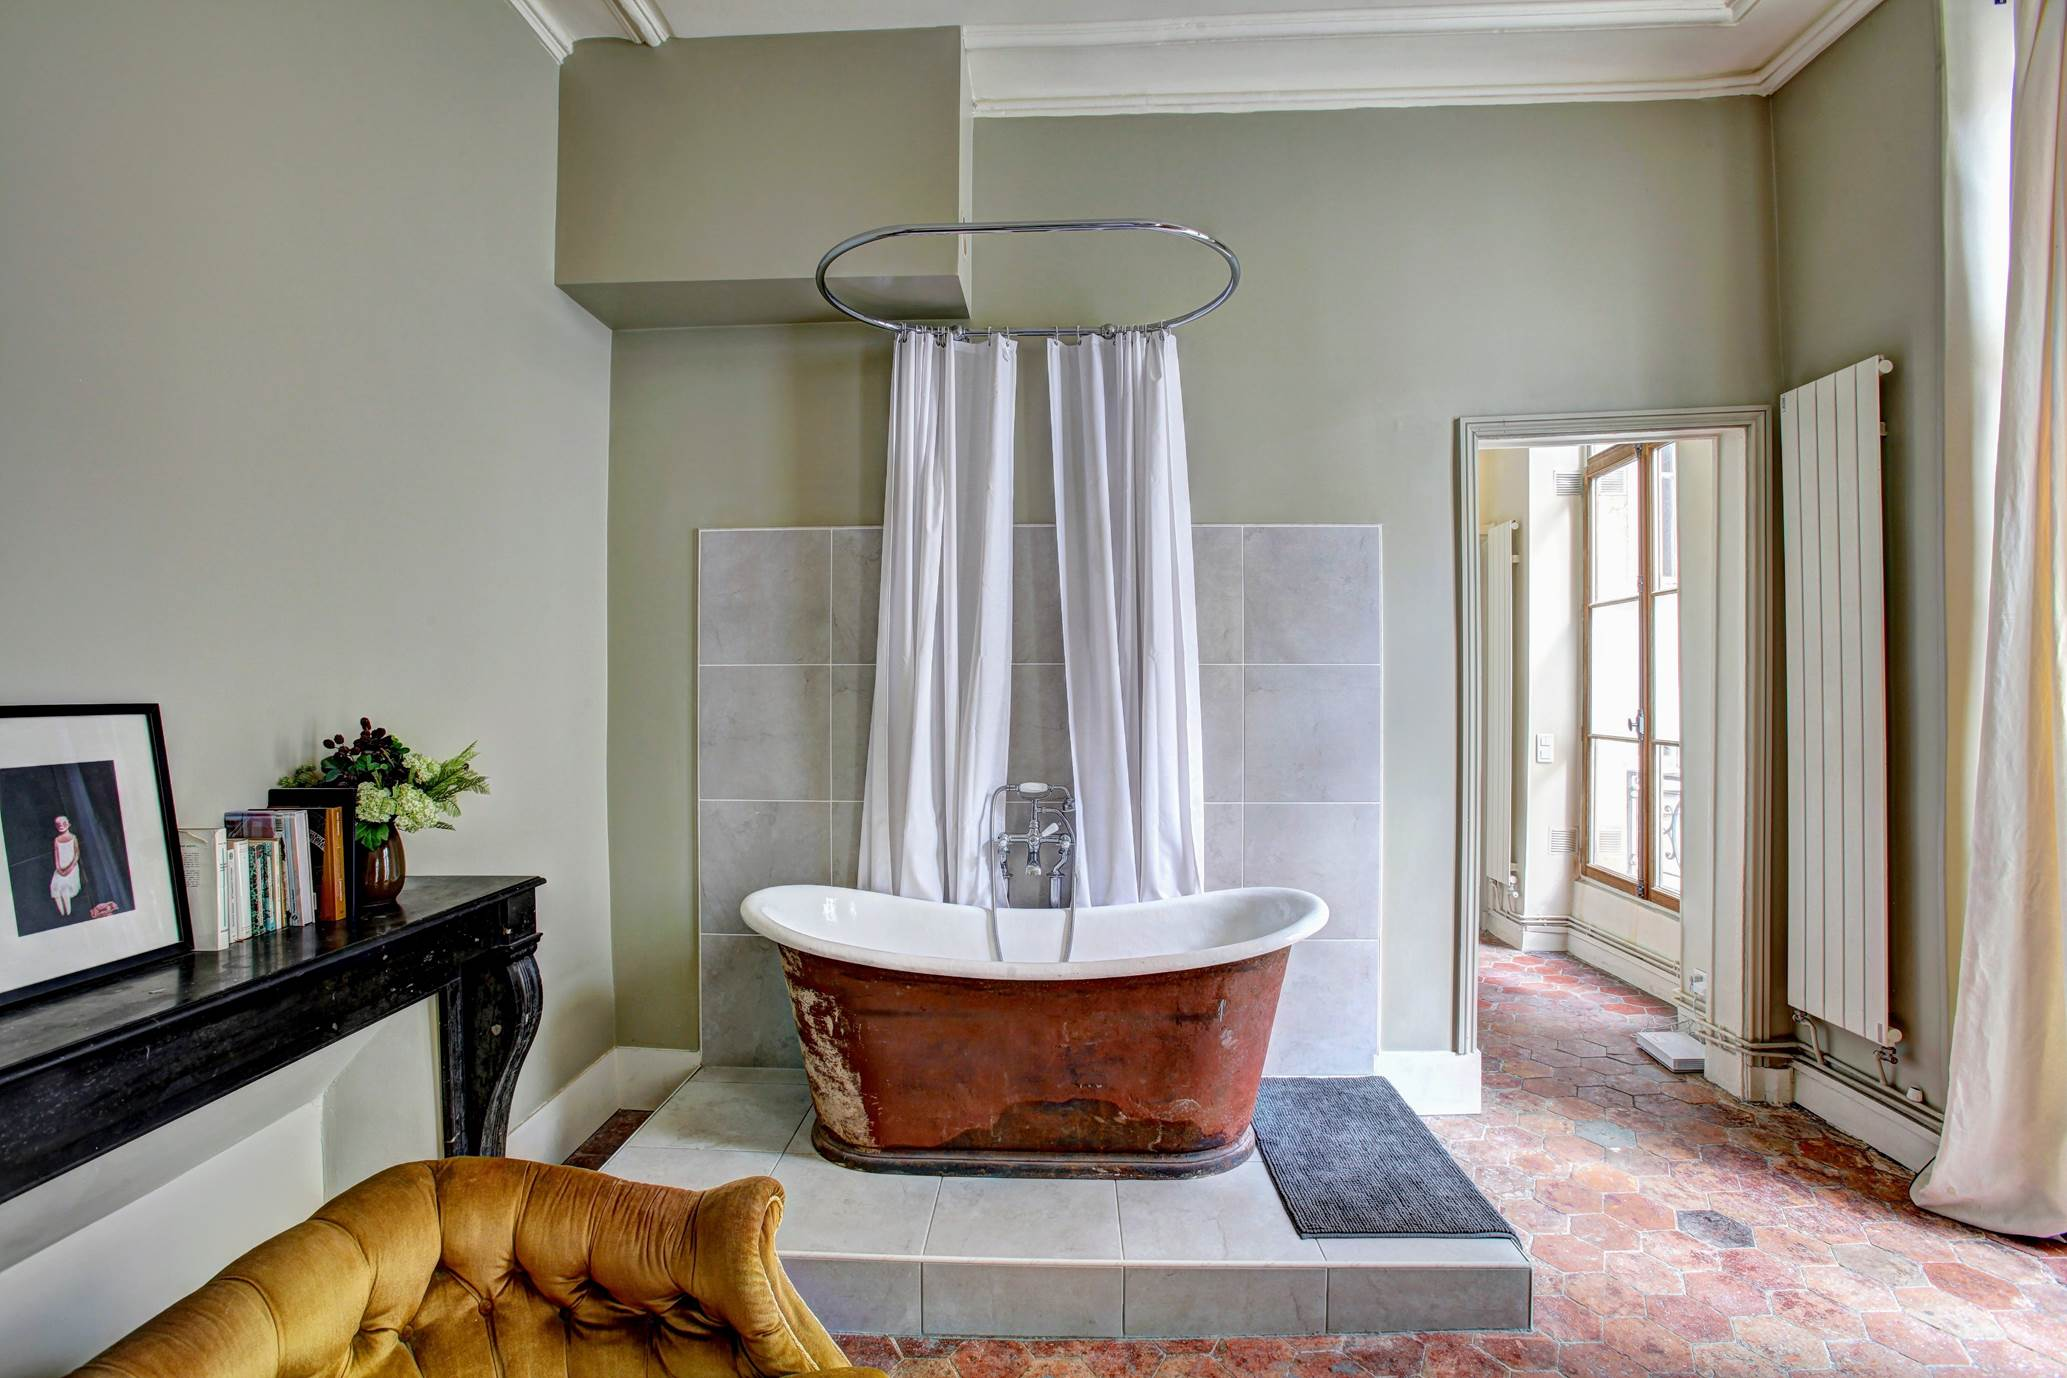 Bath and Shower Combined